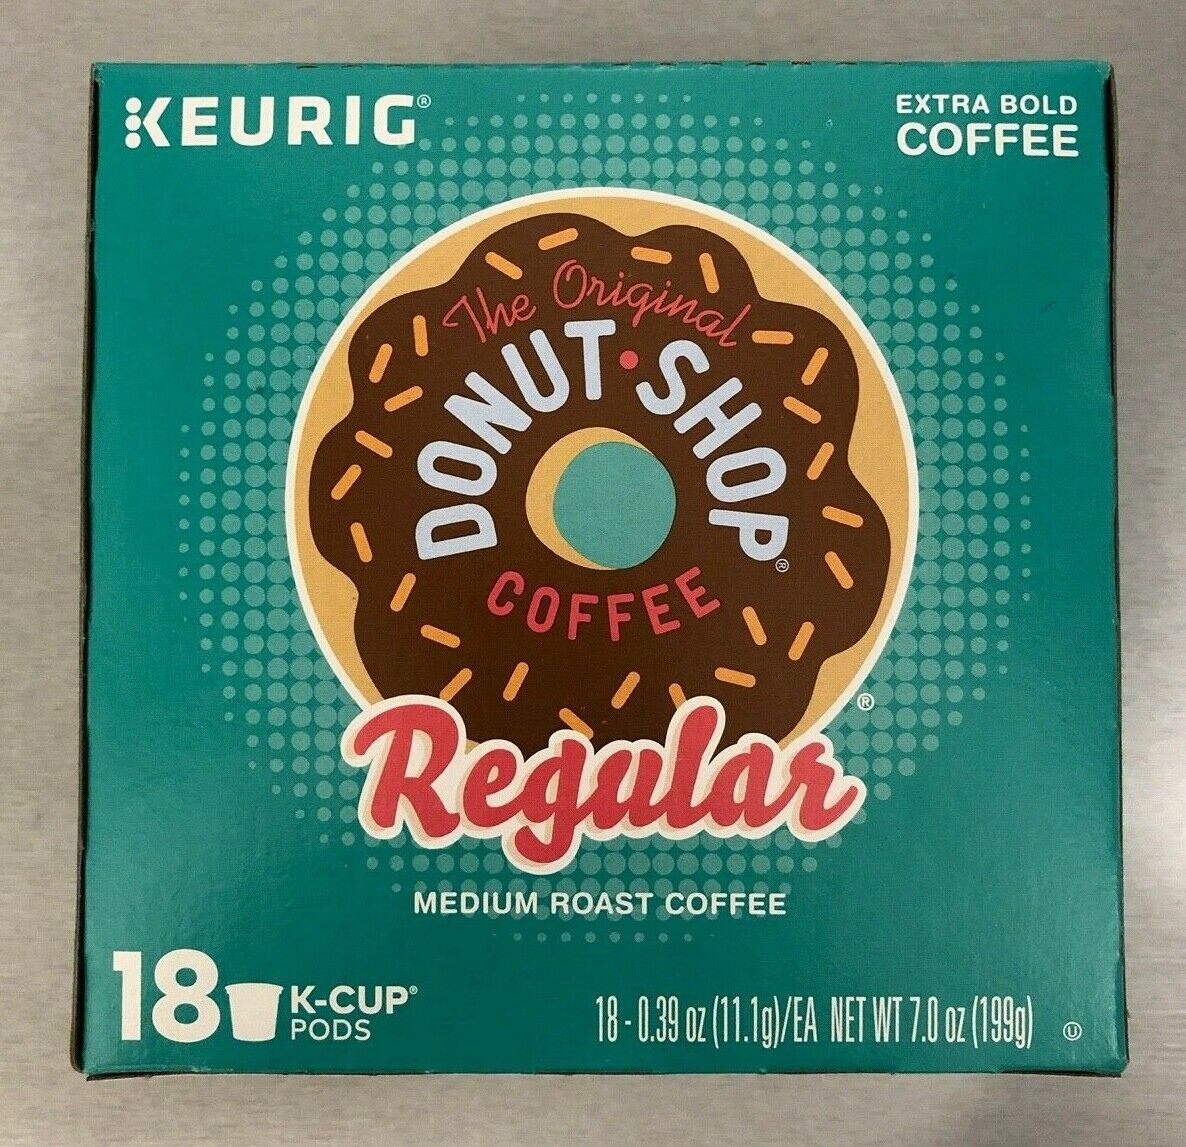 Donut Shop K-Cups Keurig + 24pk bonus! The Original Medium